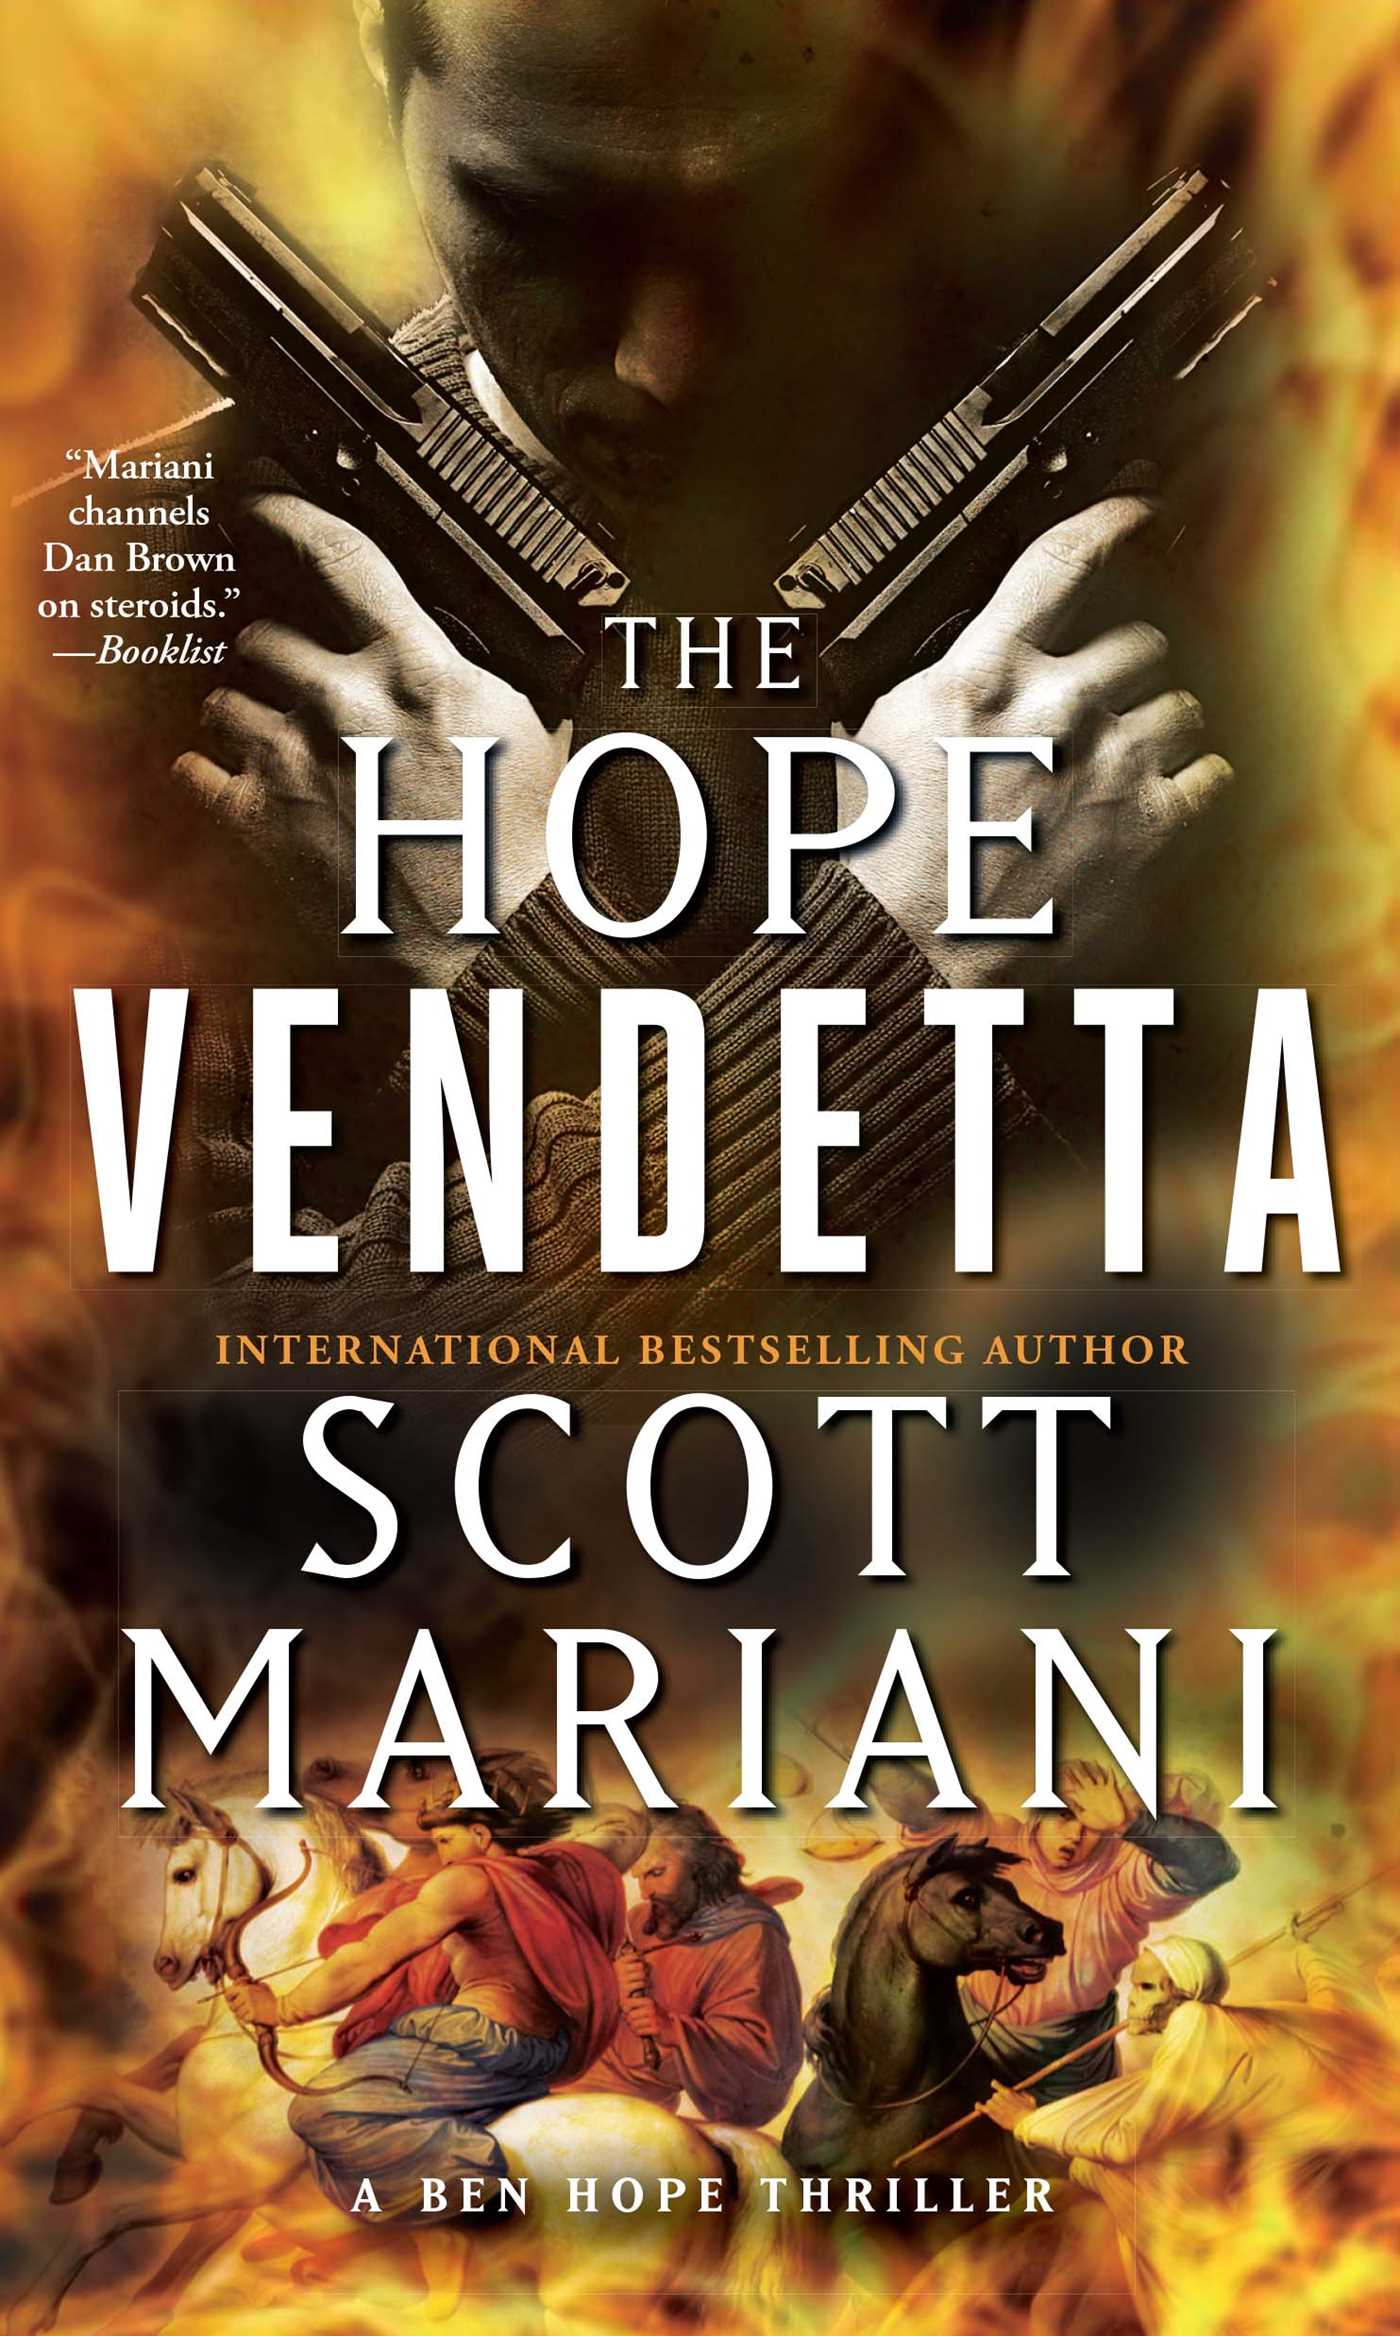 The hope vendetta 9781439193501 hr